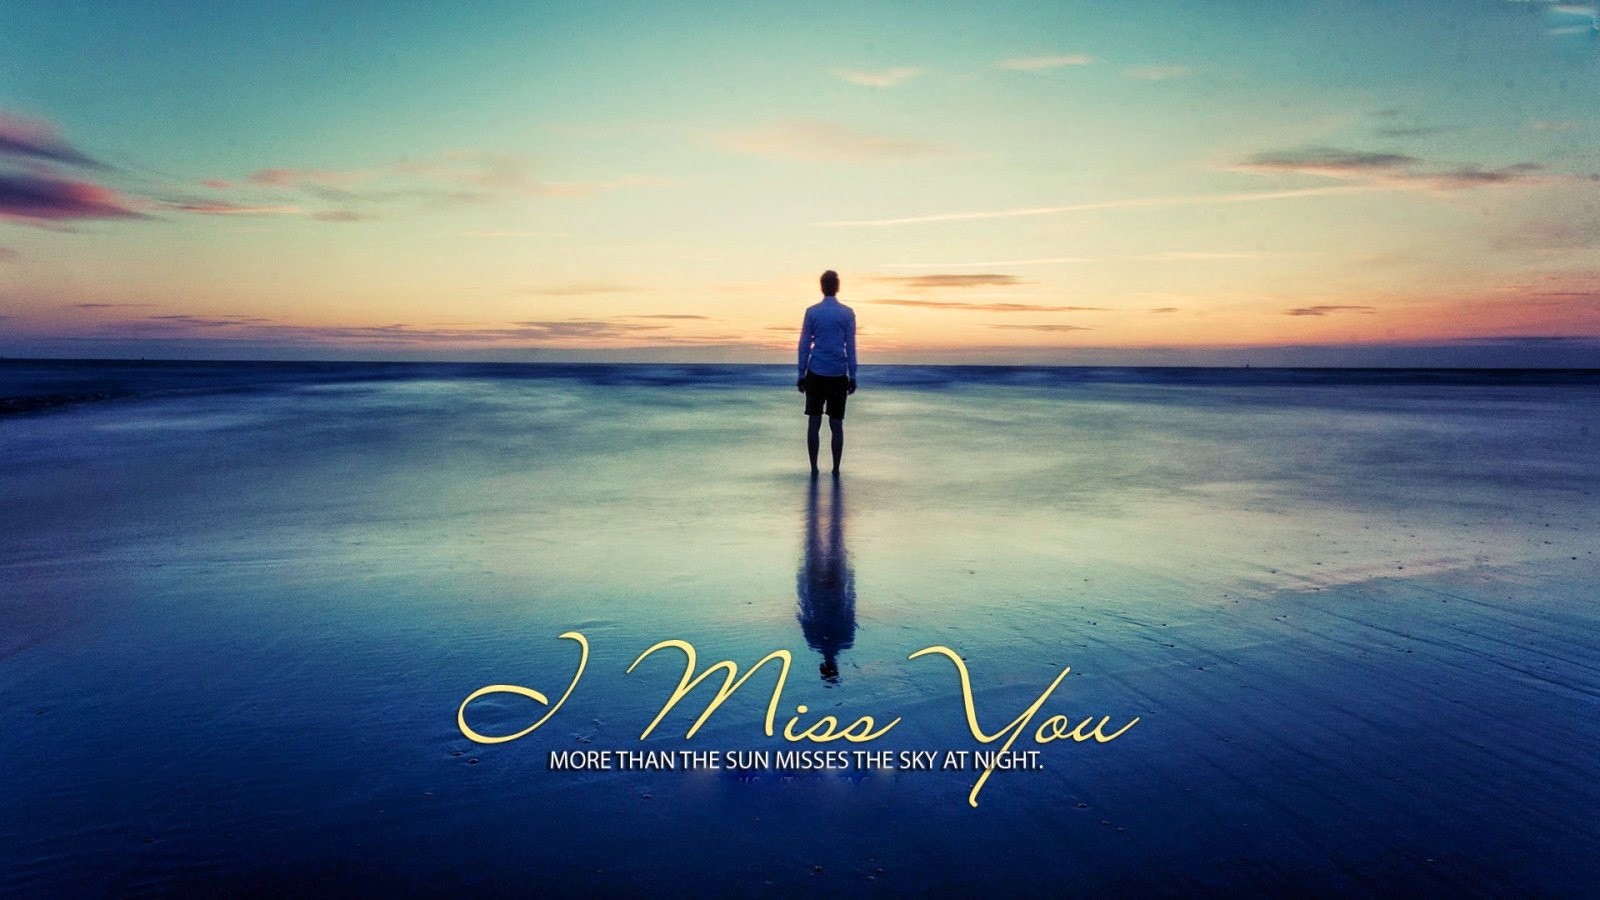 Wallpaper download i miss you - Miss You Hd Wallpapers Download Free High Definition Desktop